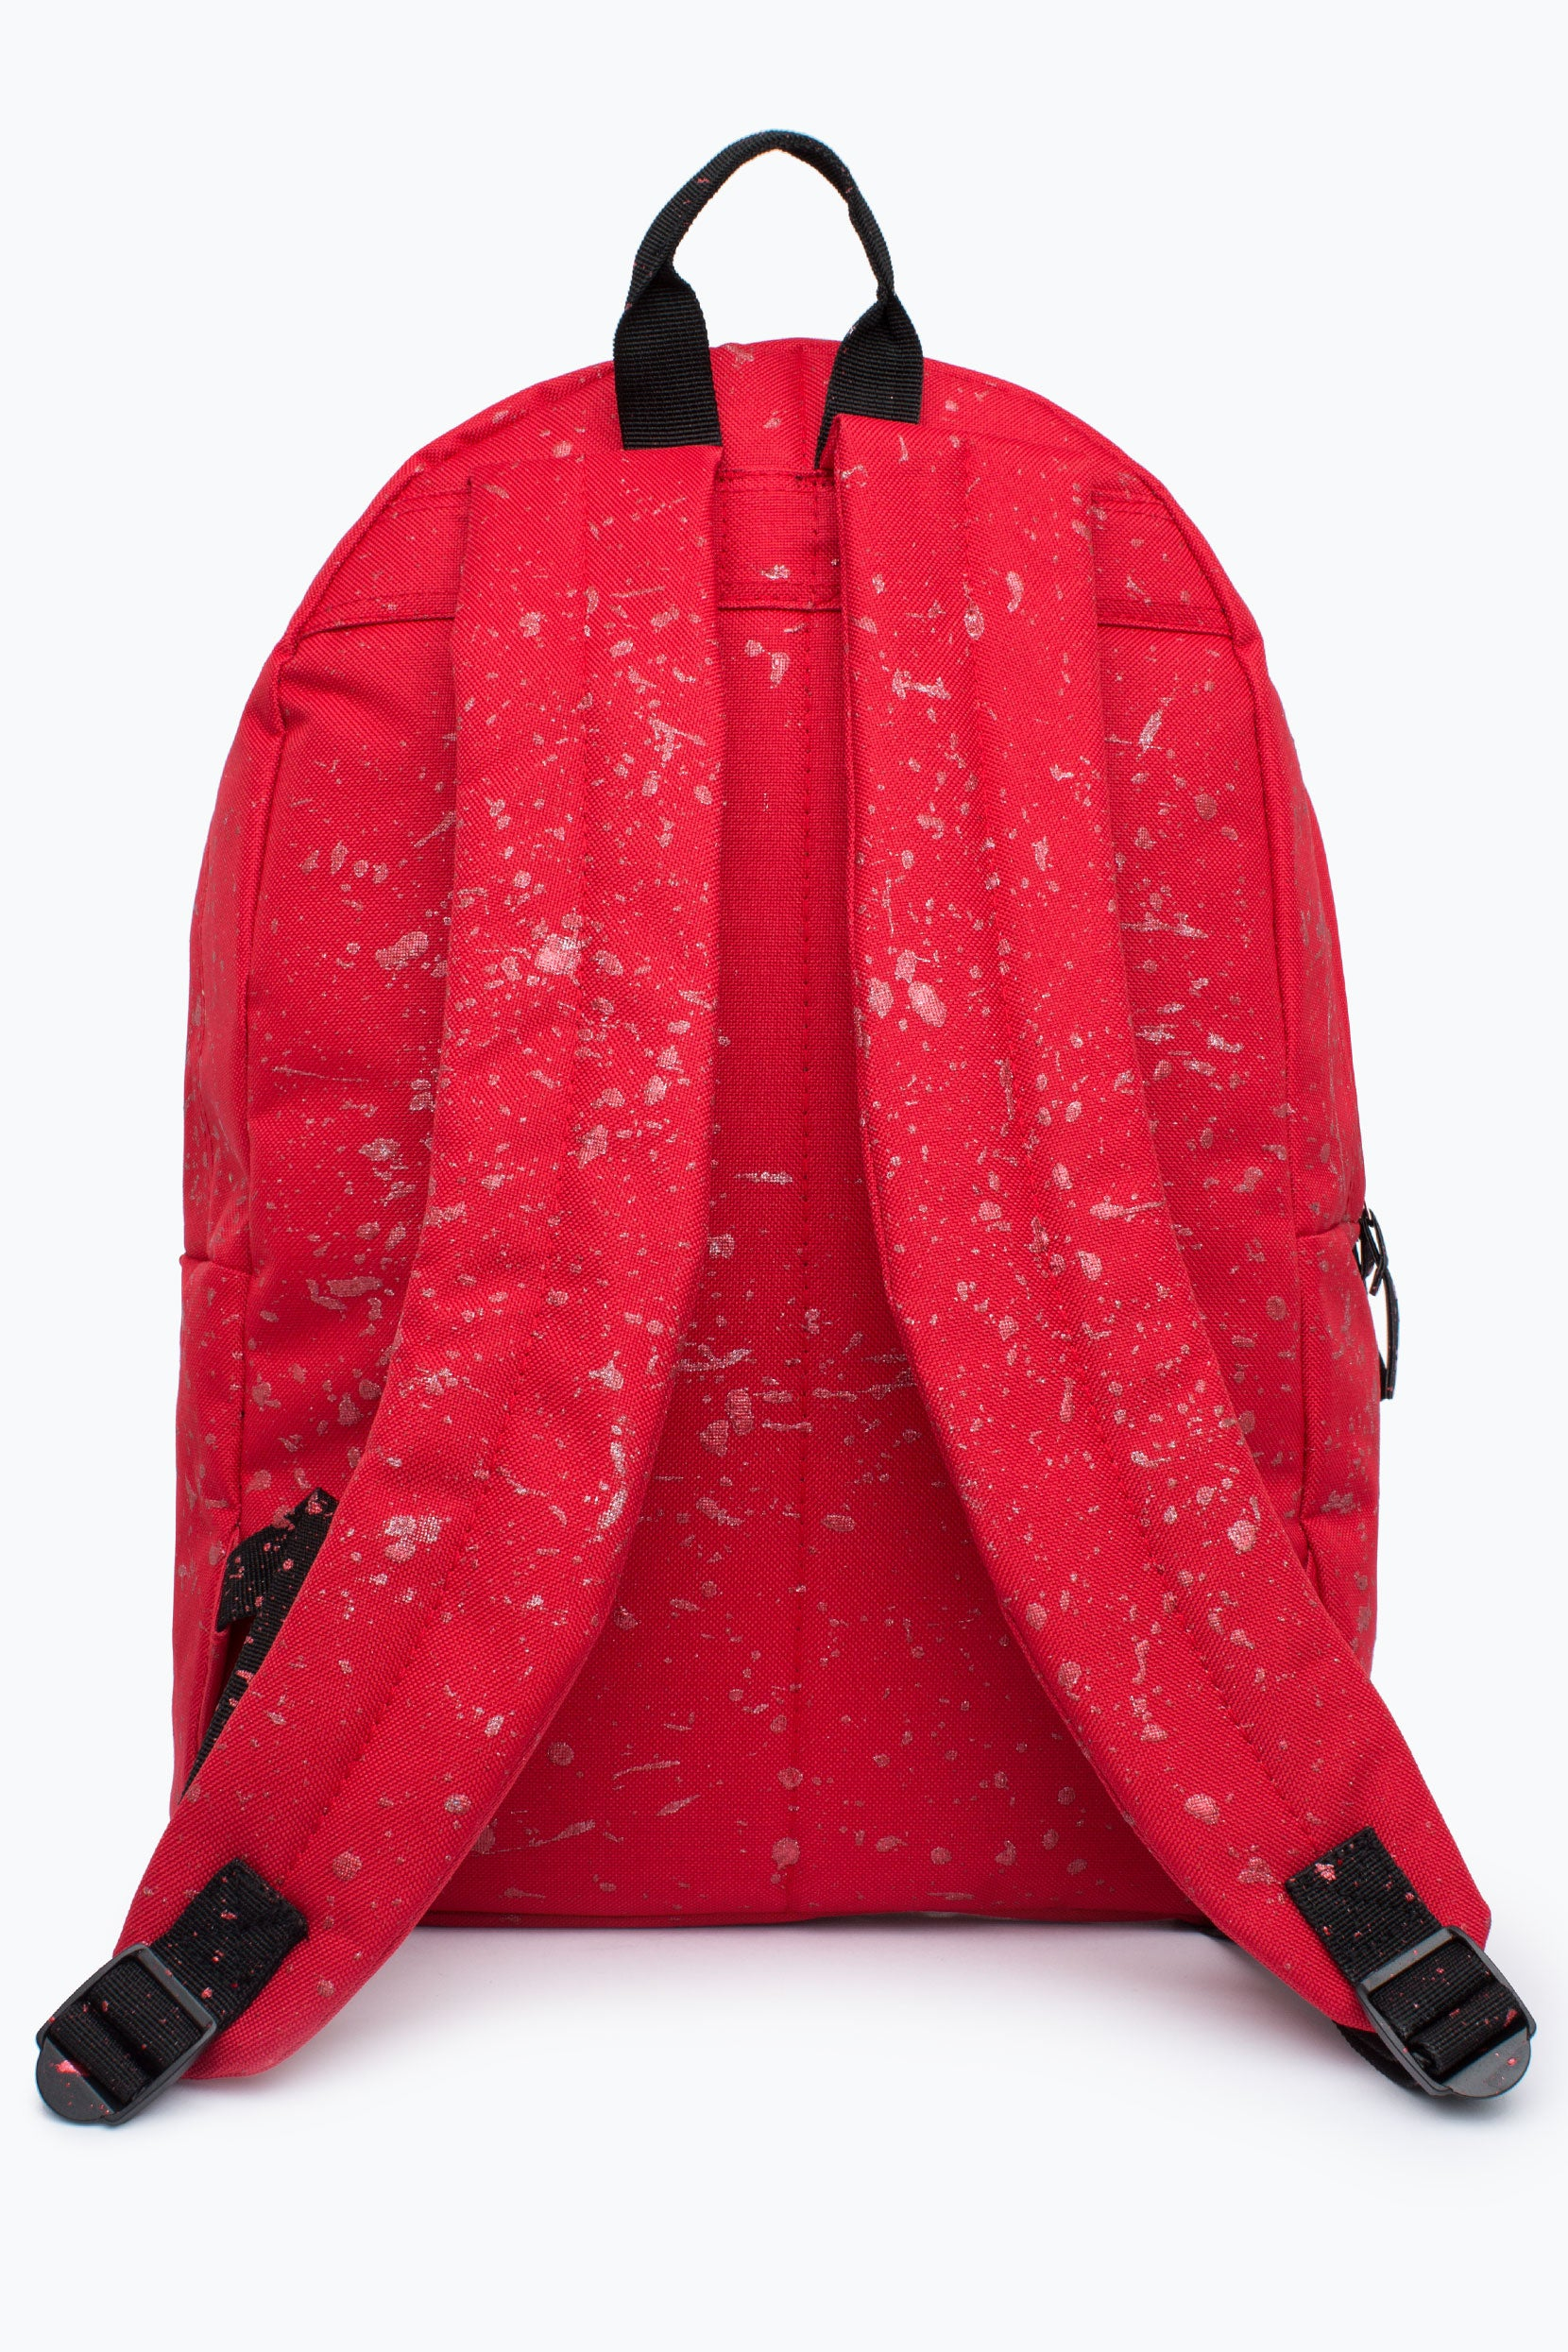 43077eccbbec HYPE RED WITH METALLIC RED SPECKLE BACKPACK – JustHype ltd